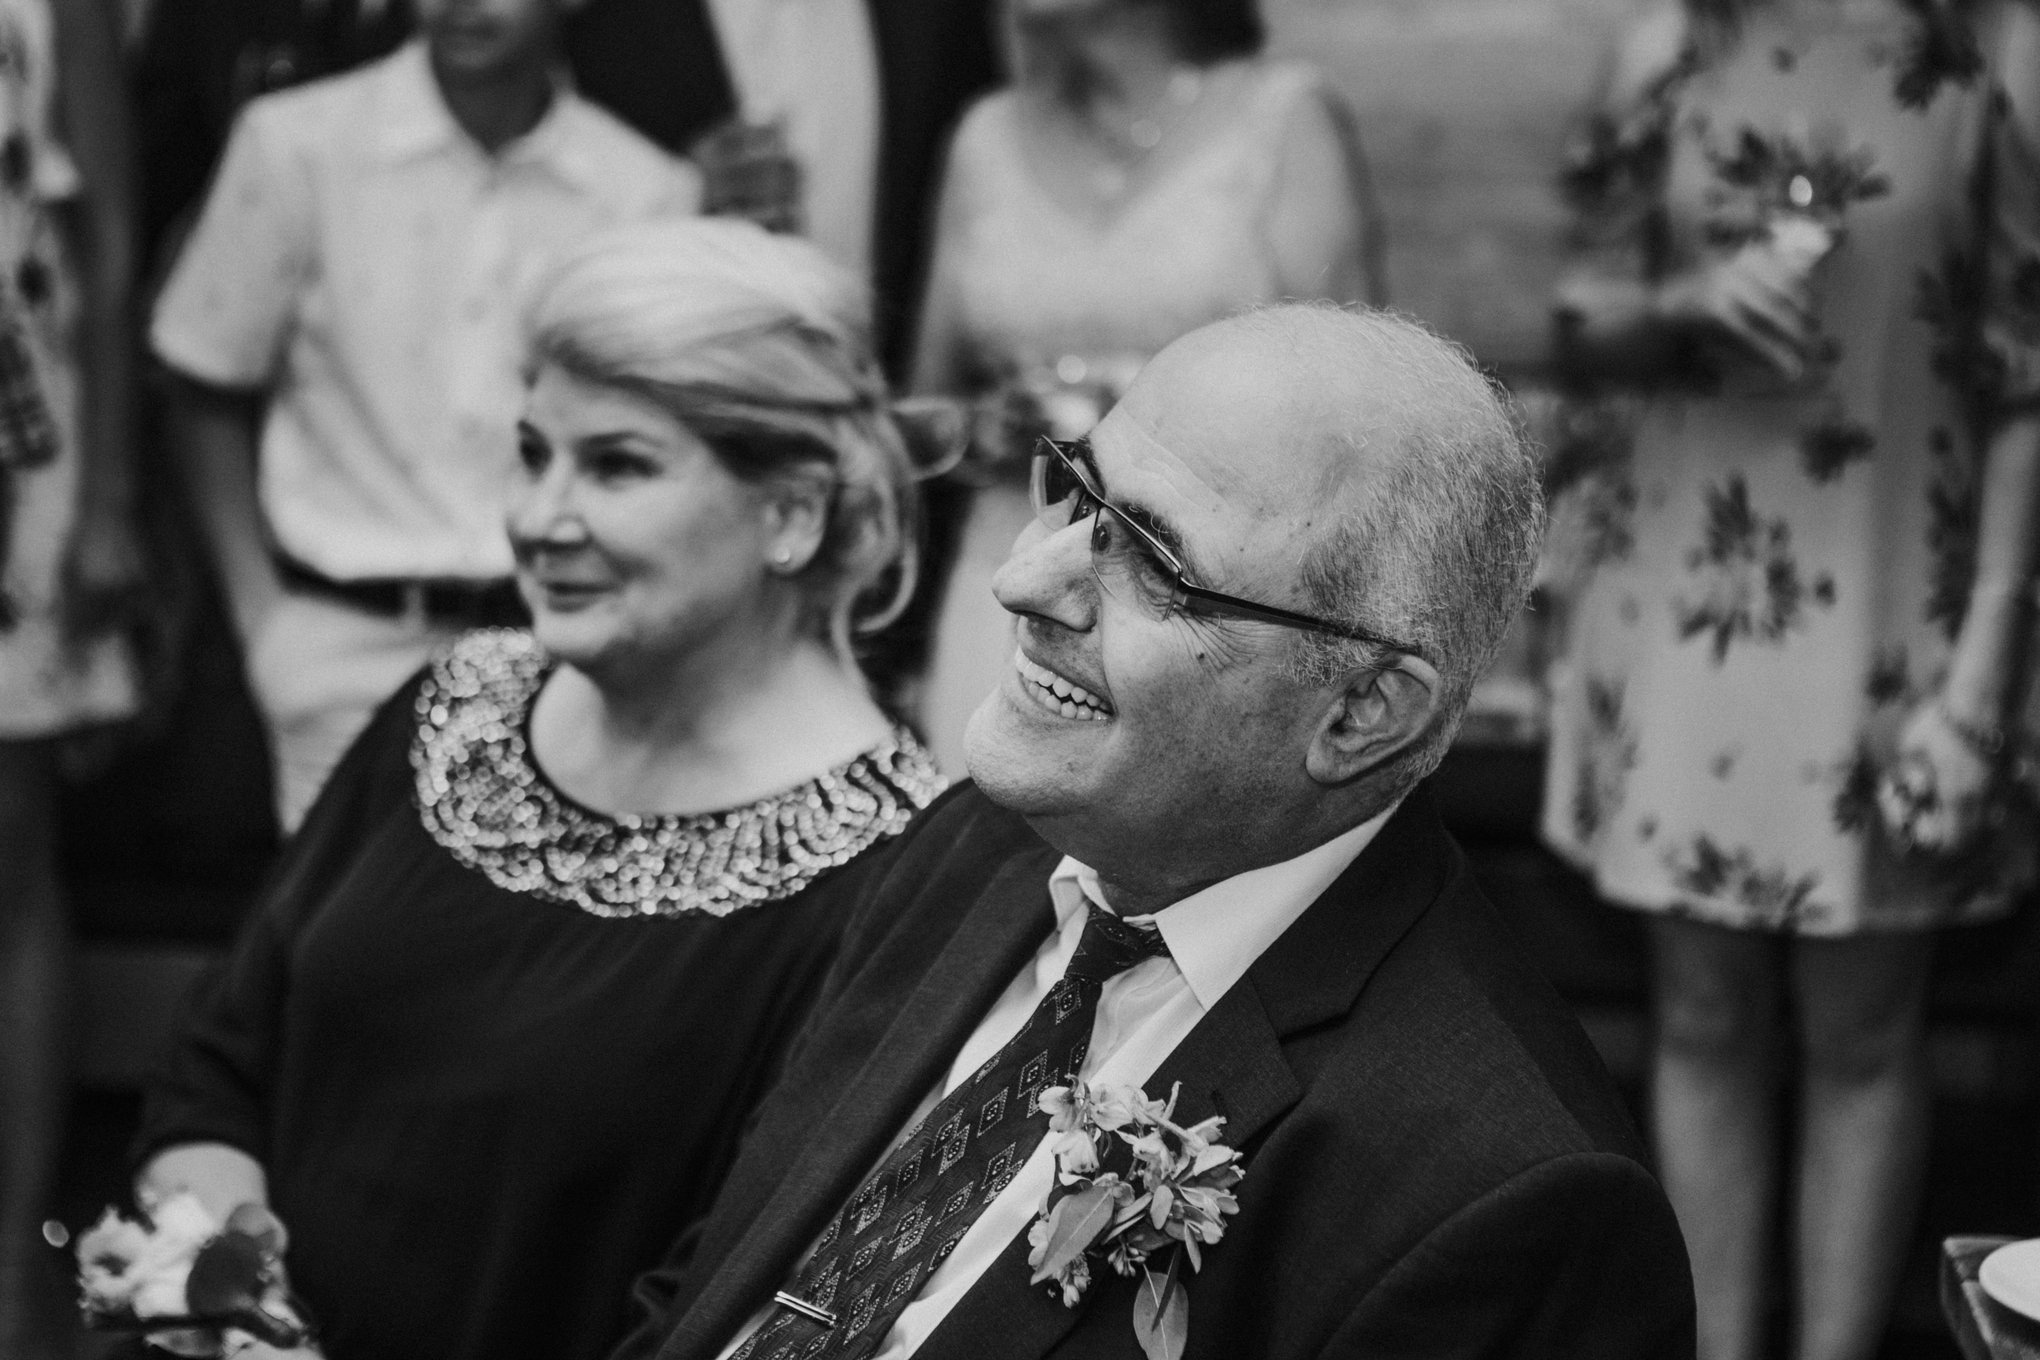 Cambridge_Puritan_Co_Wedding_Photographer_Harvard_40.jpg